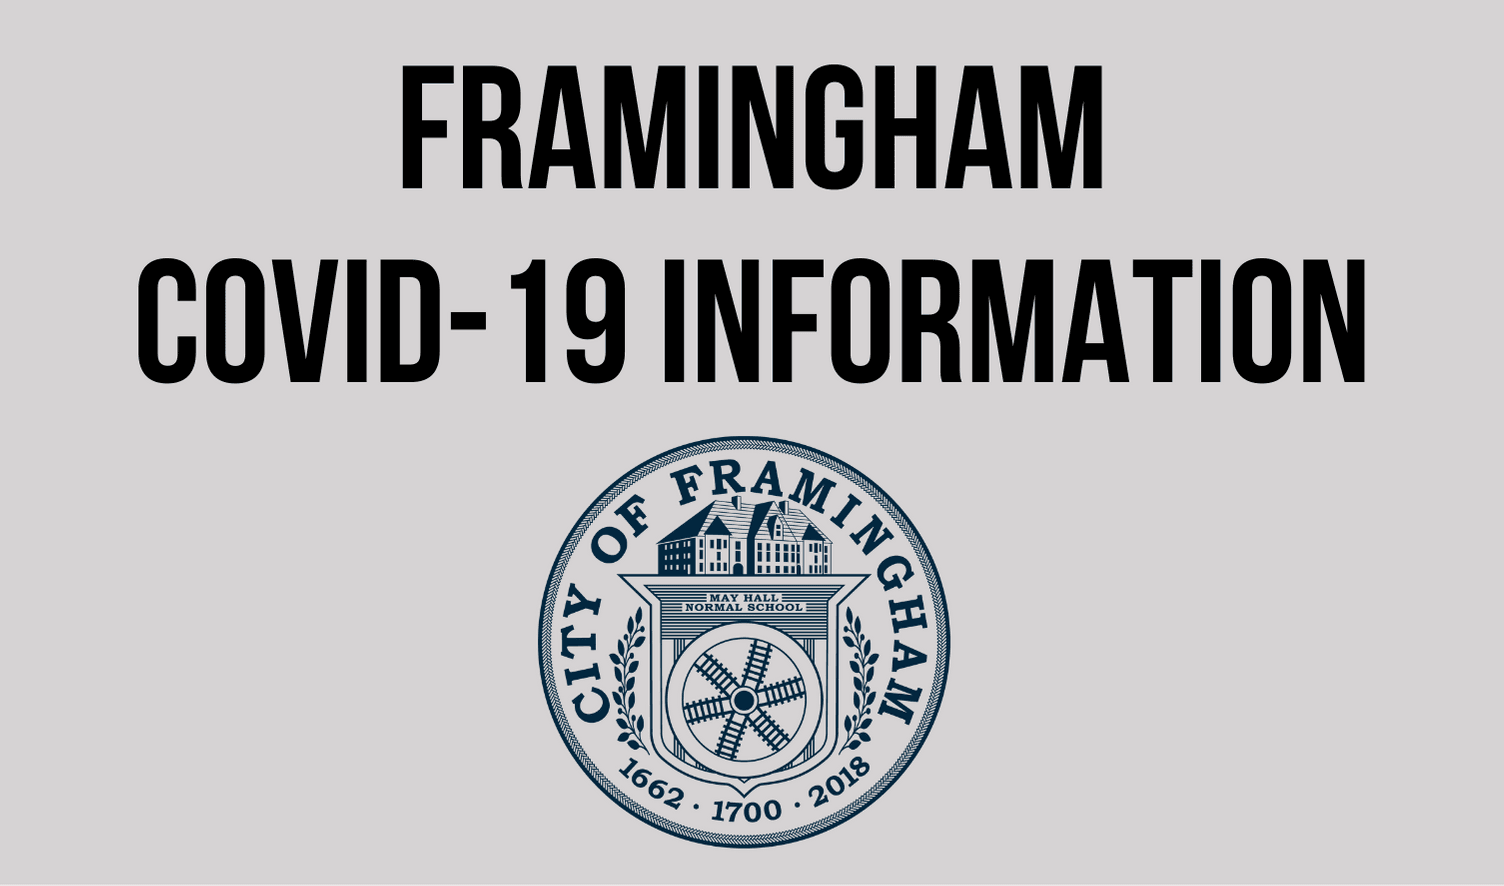 Picture of the City seal with the following text: Framingham COVID-19 Information